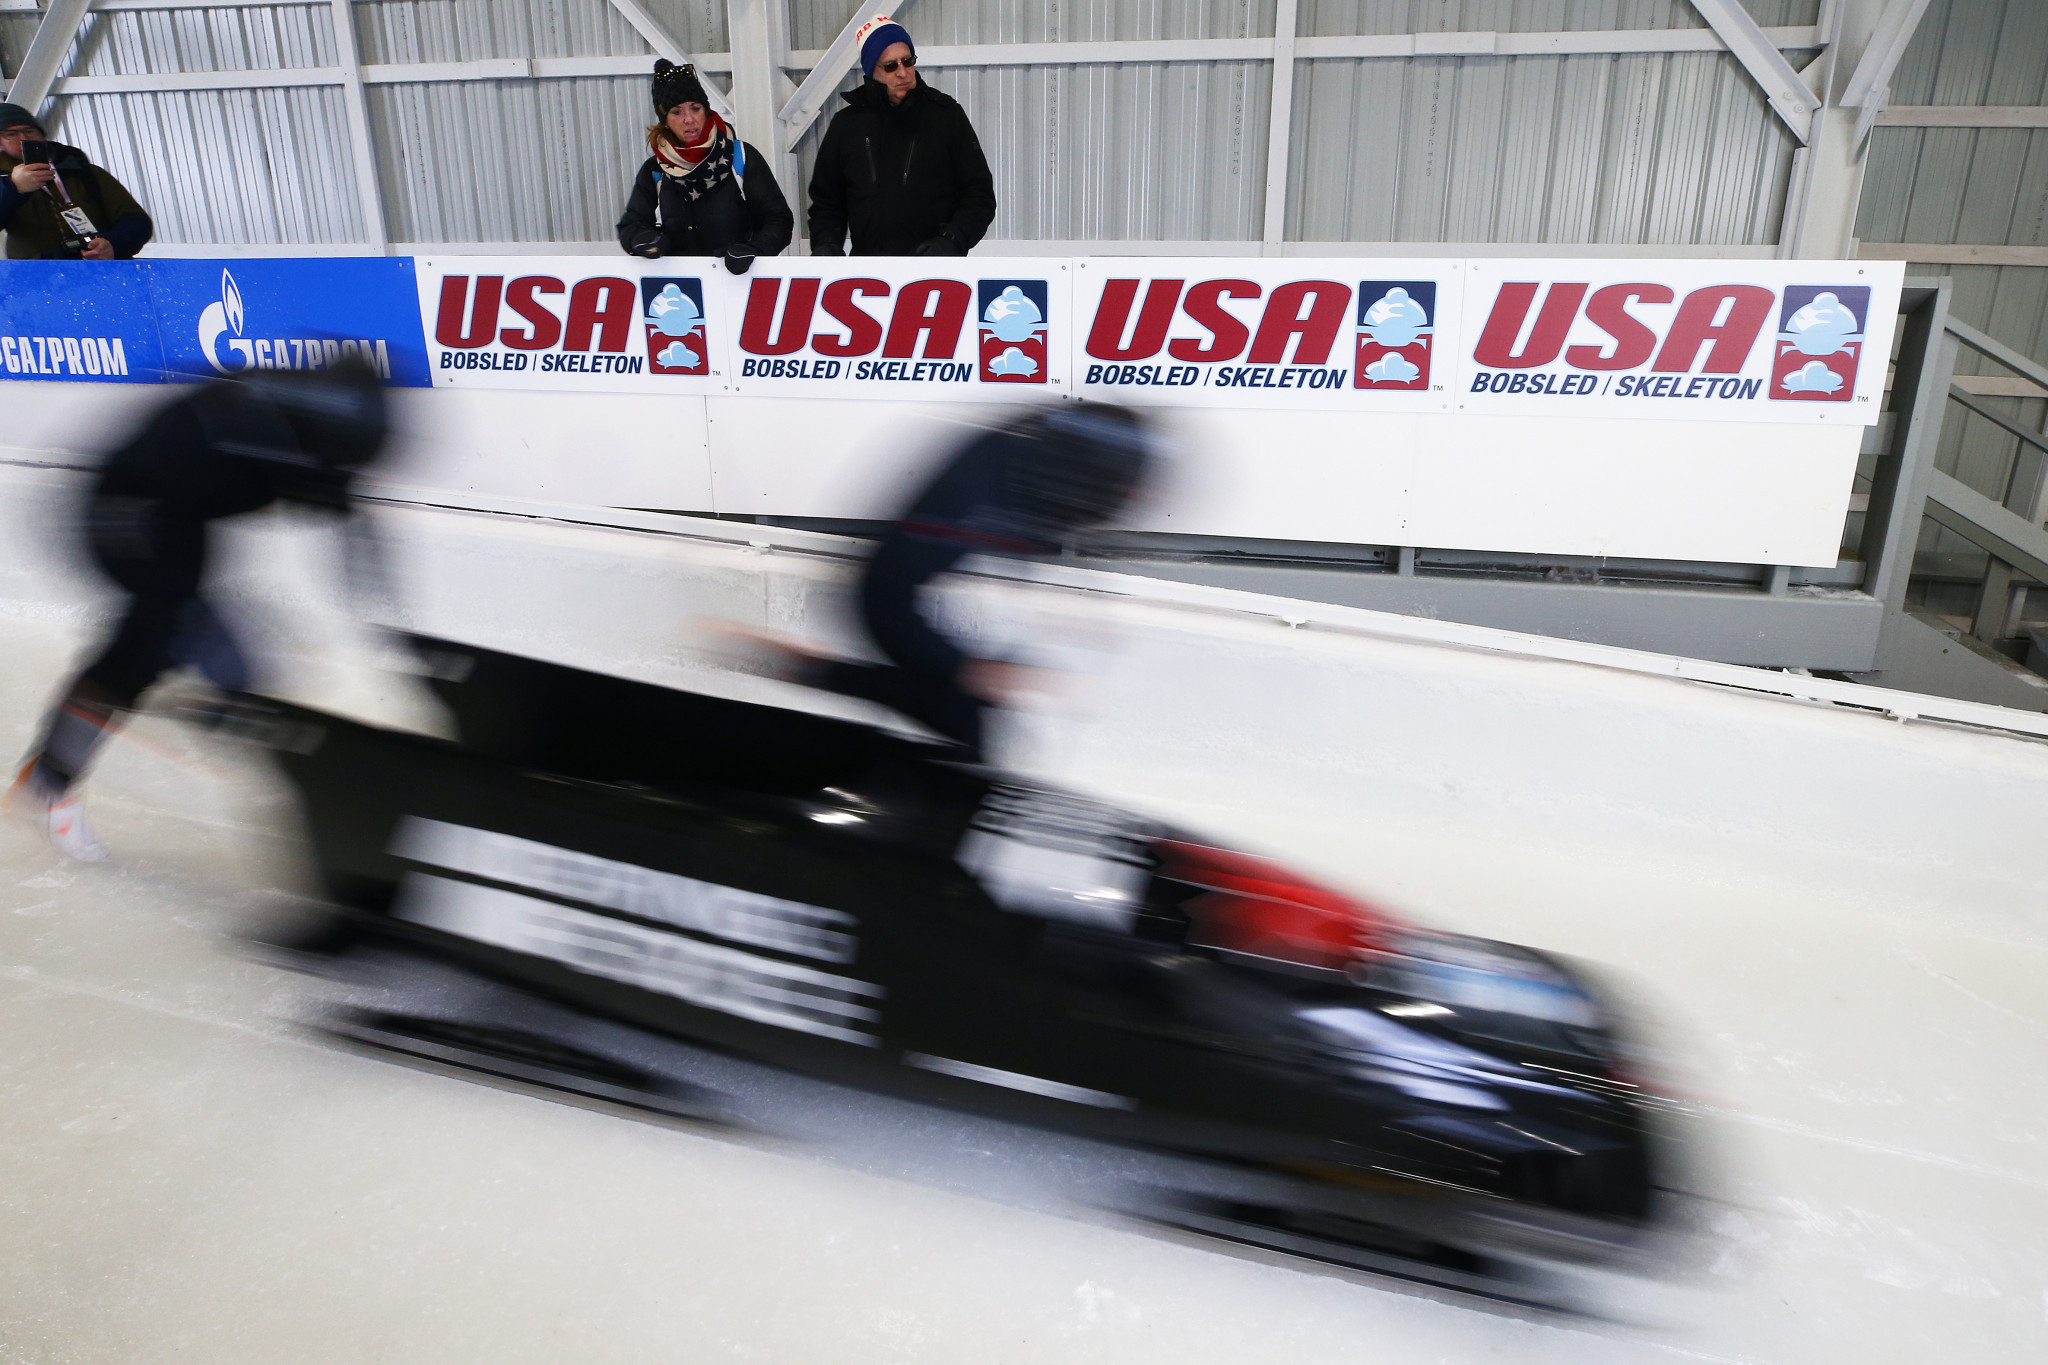 USA bobsleigh and skeleton teams to skip first half of season despite IBSF's calendar adjustments